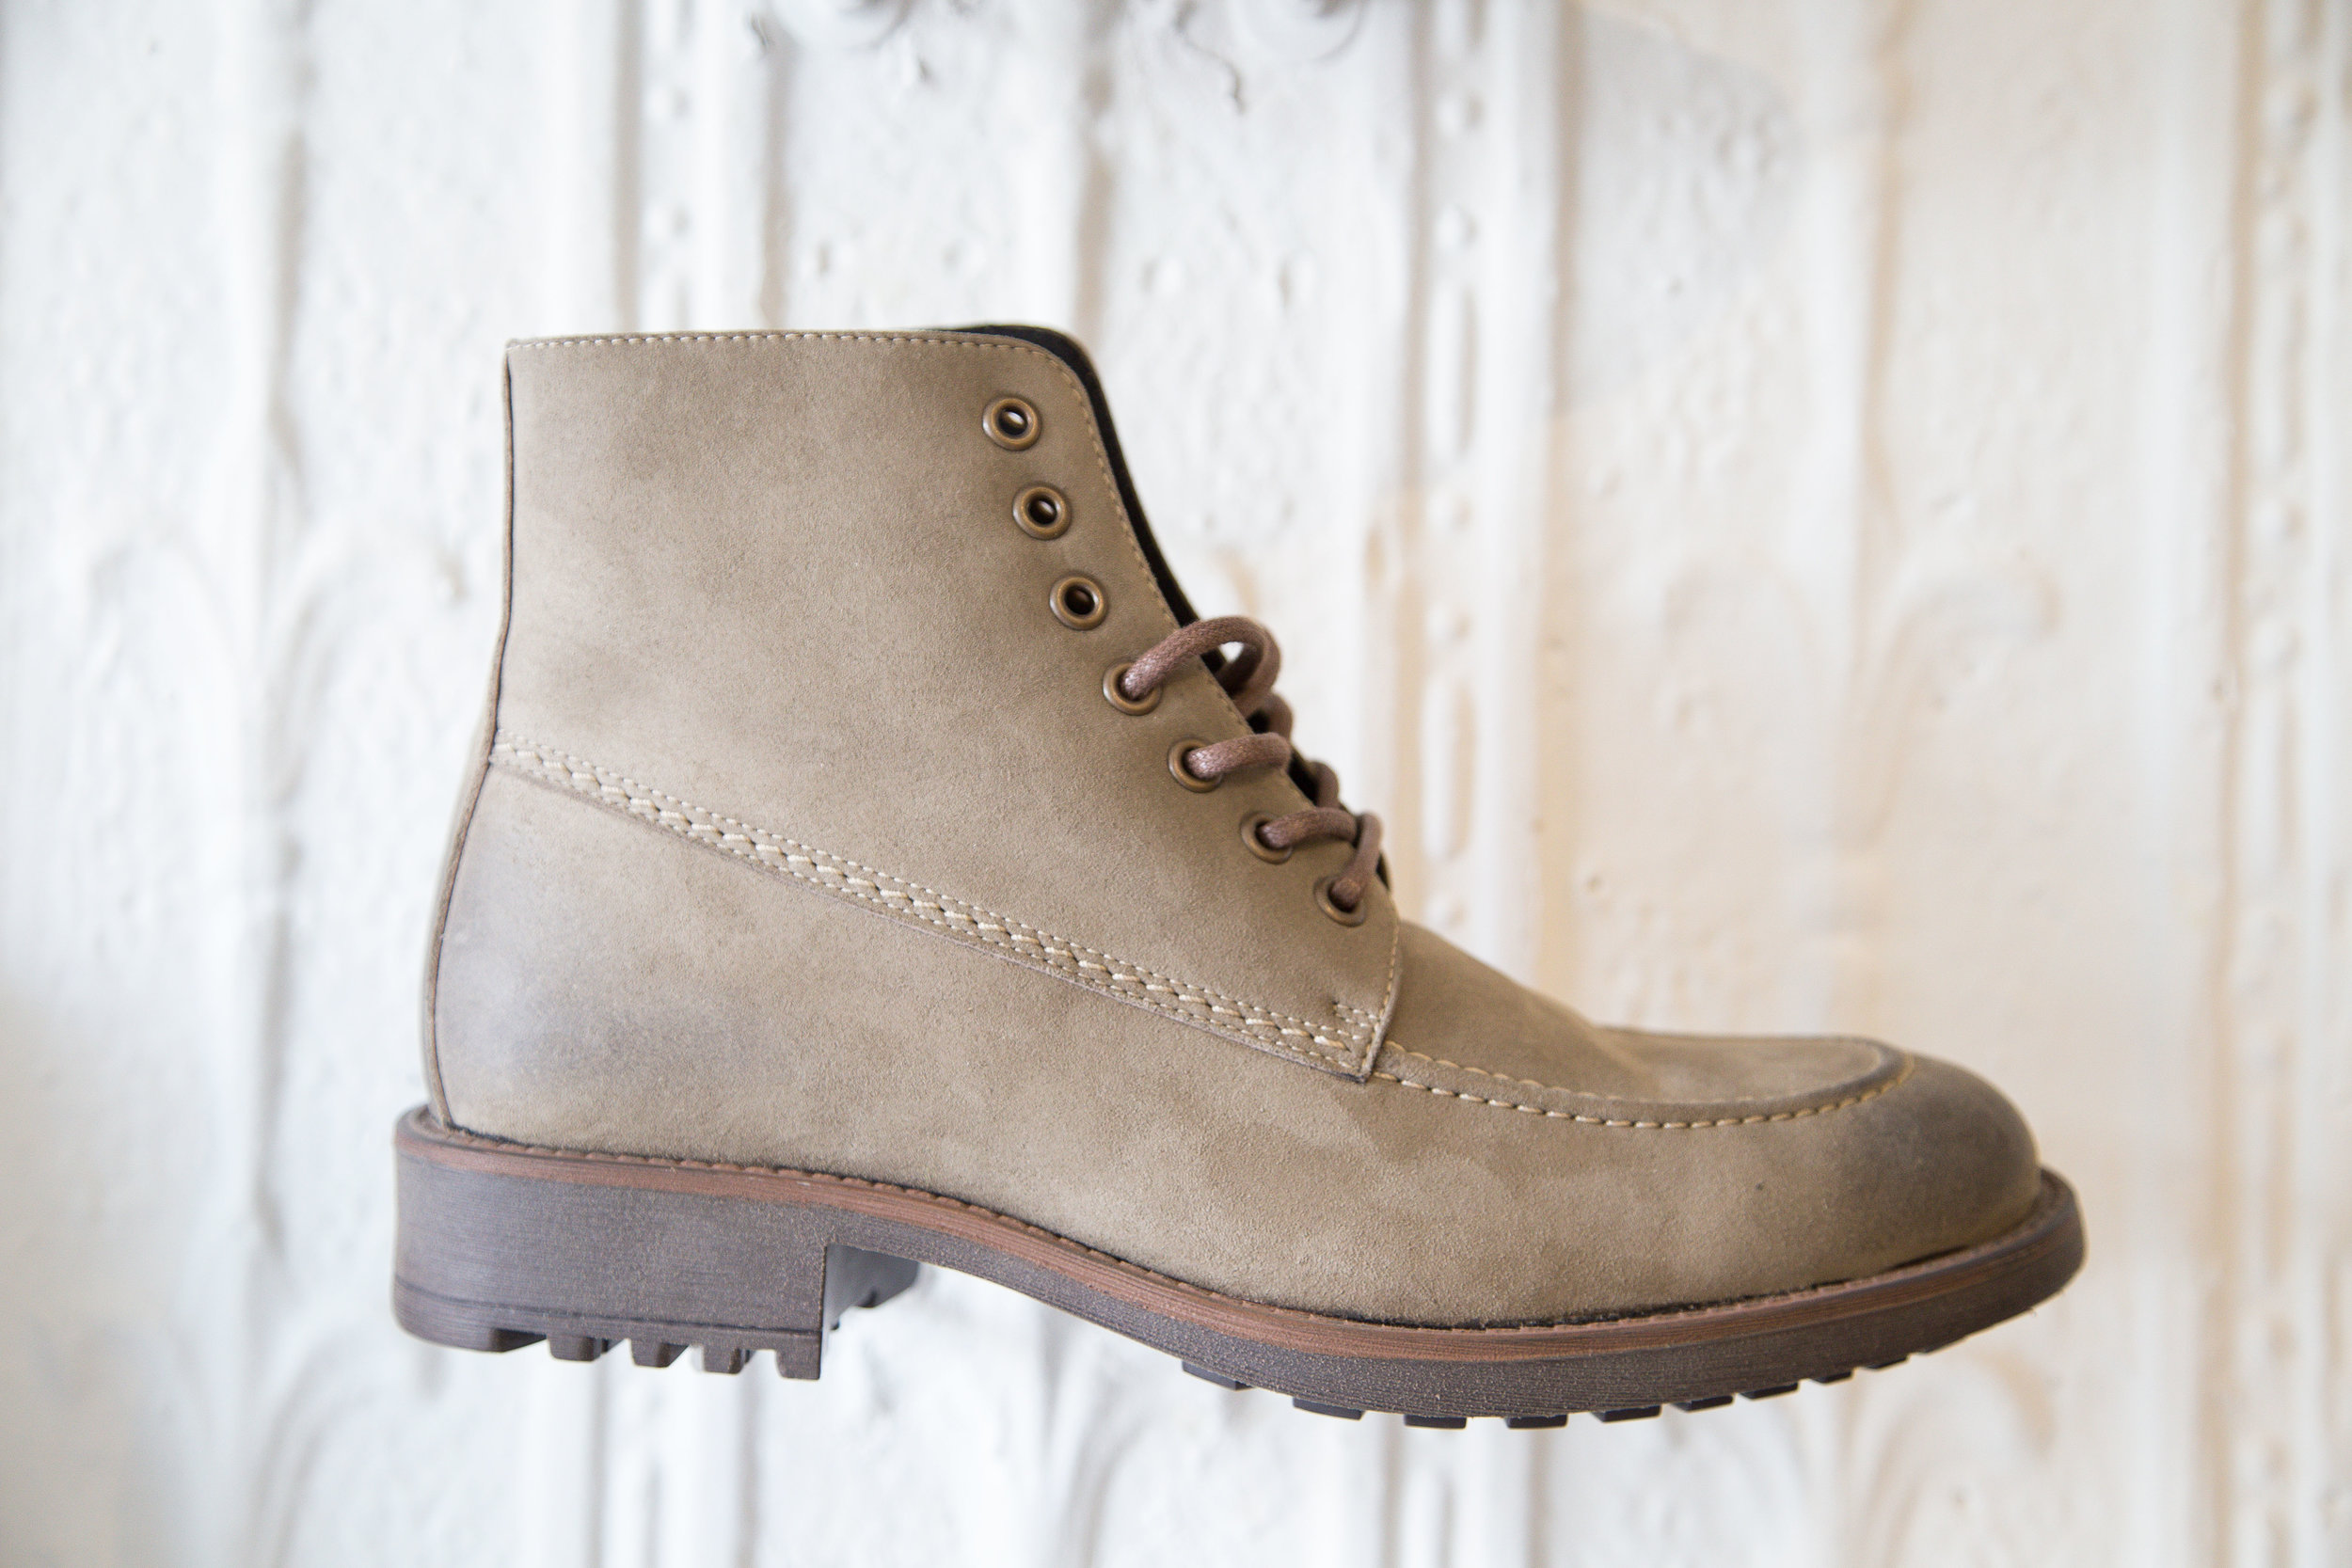 Factory Boot.